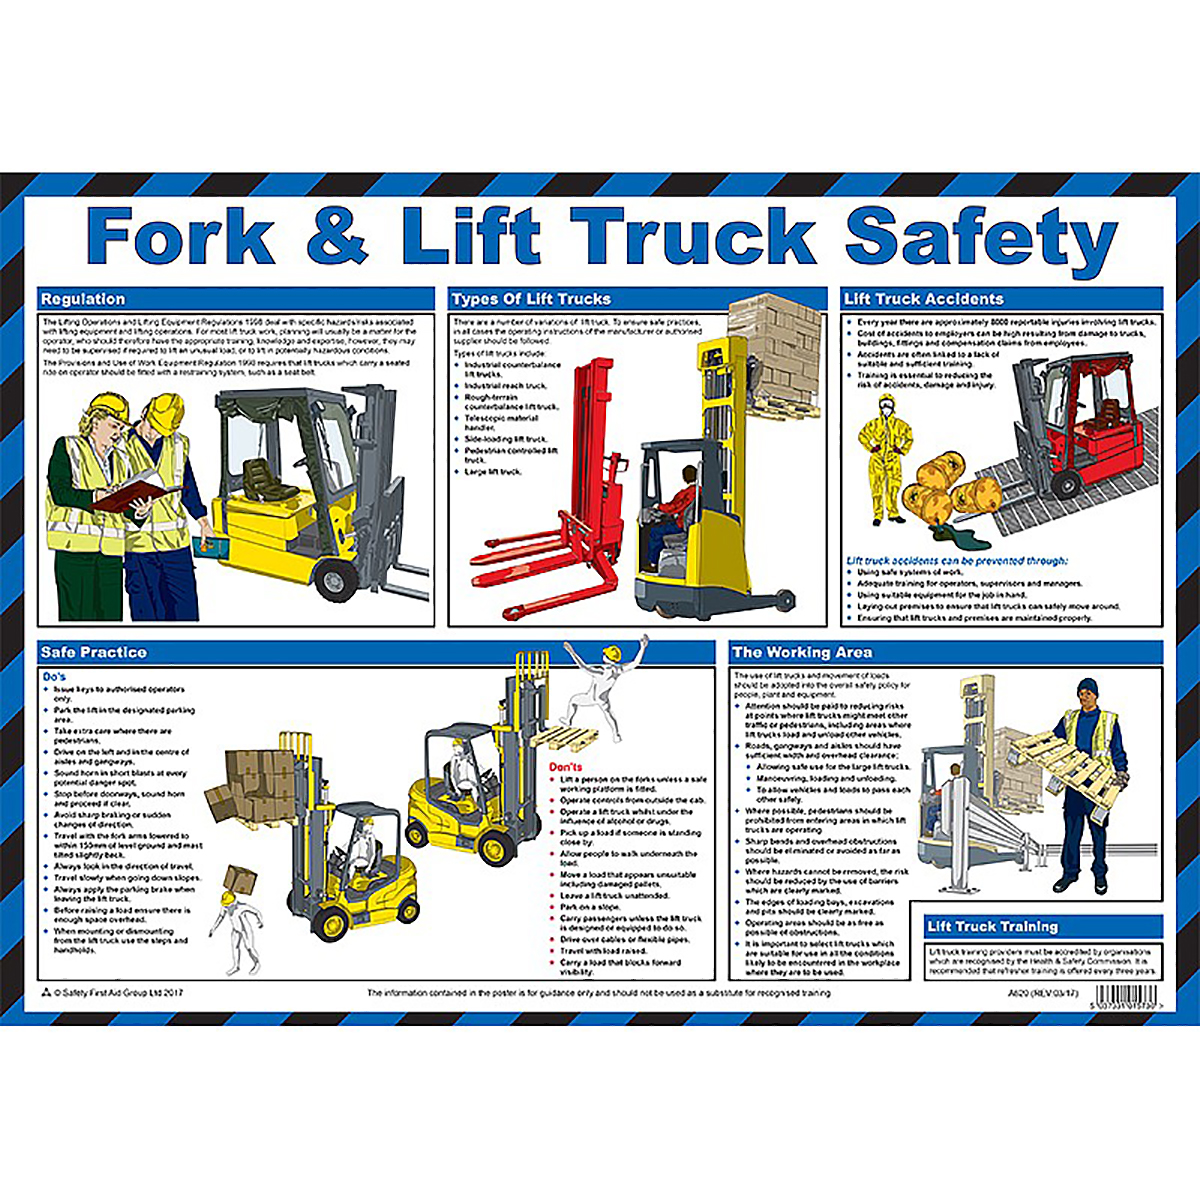 Fork and Lift Truck Safety Poster